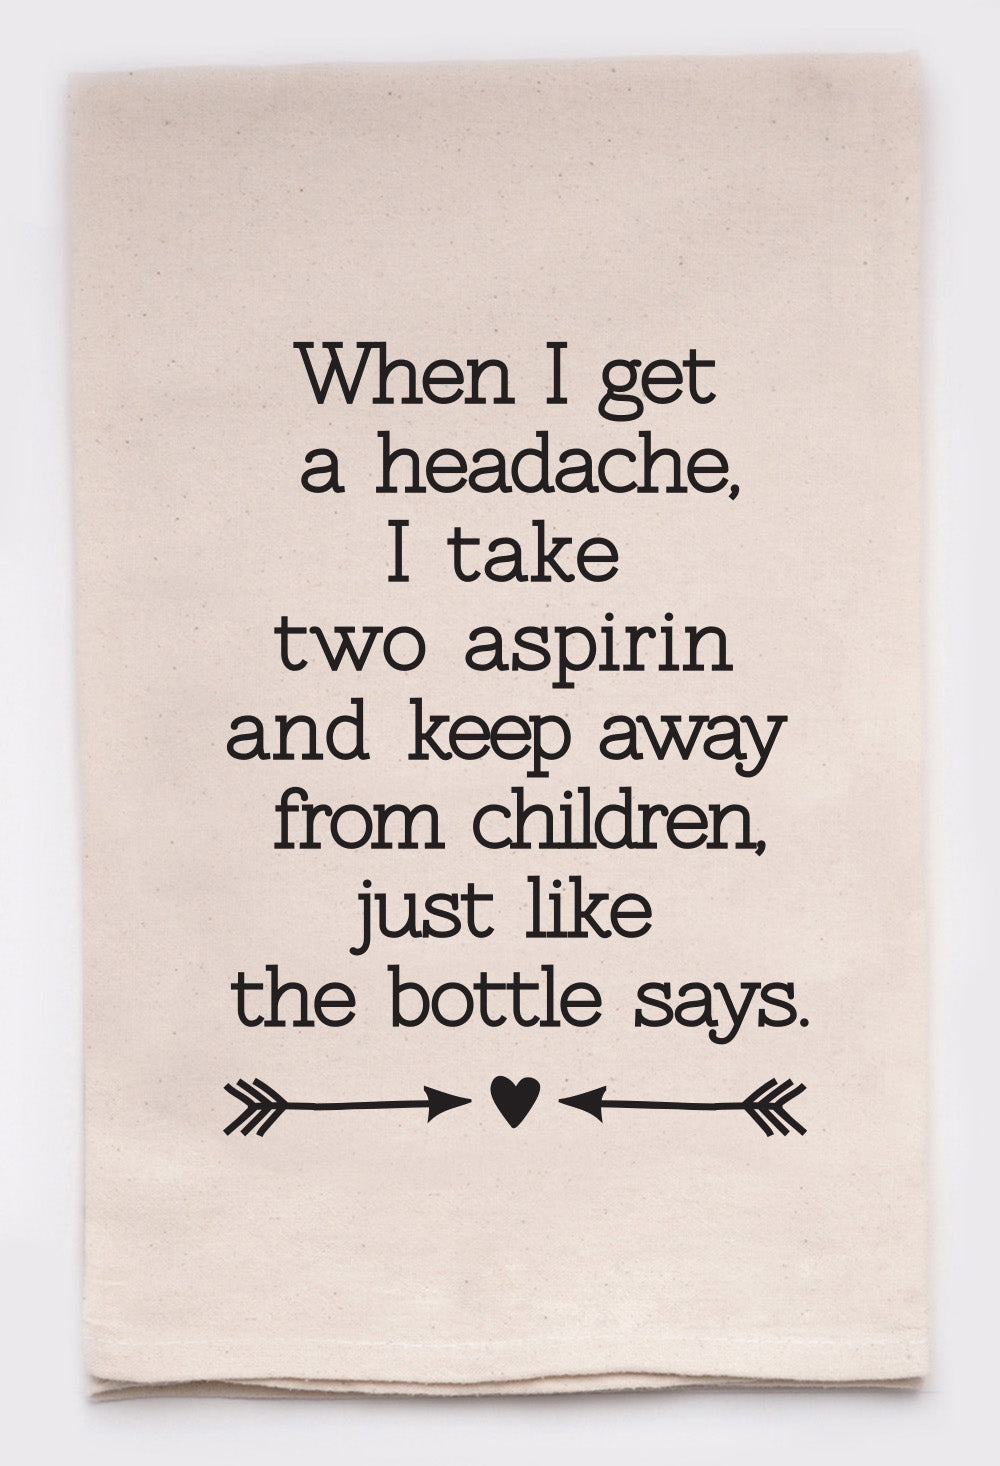 when I get a headache, I take two aspirin and keep away from children like the bottle says